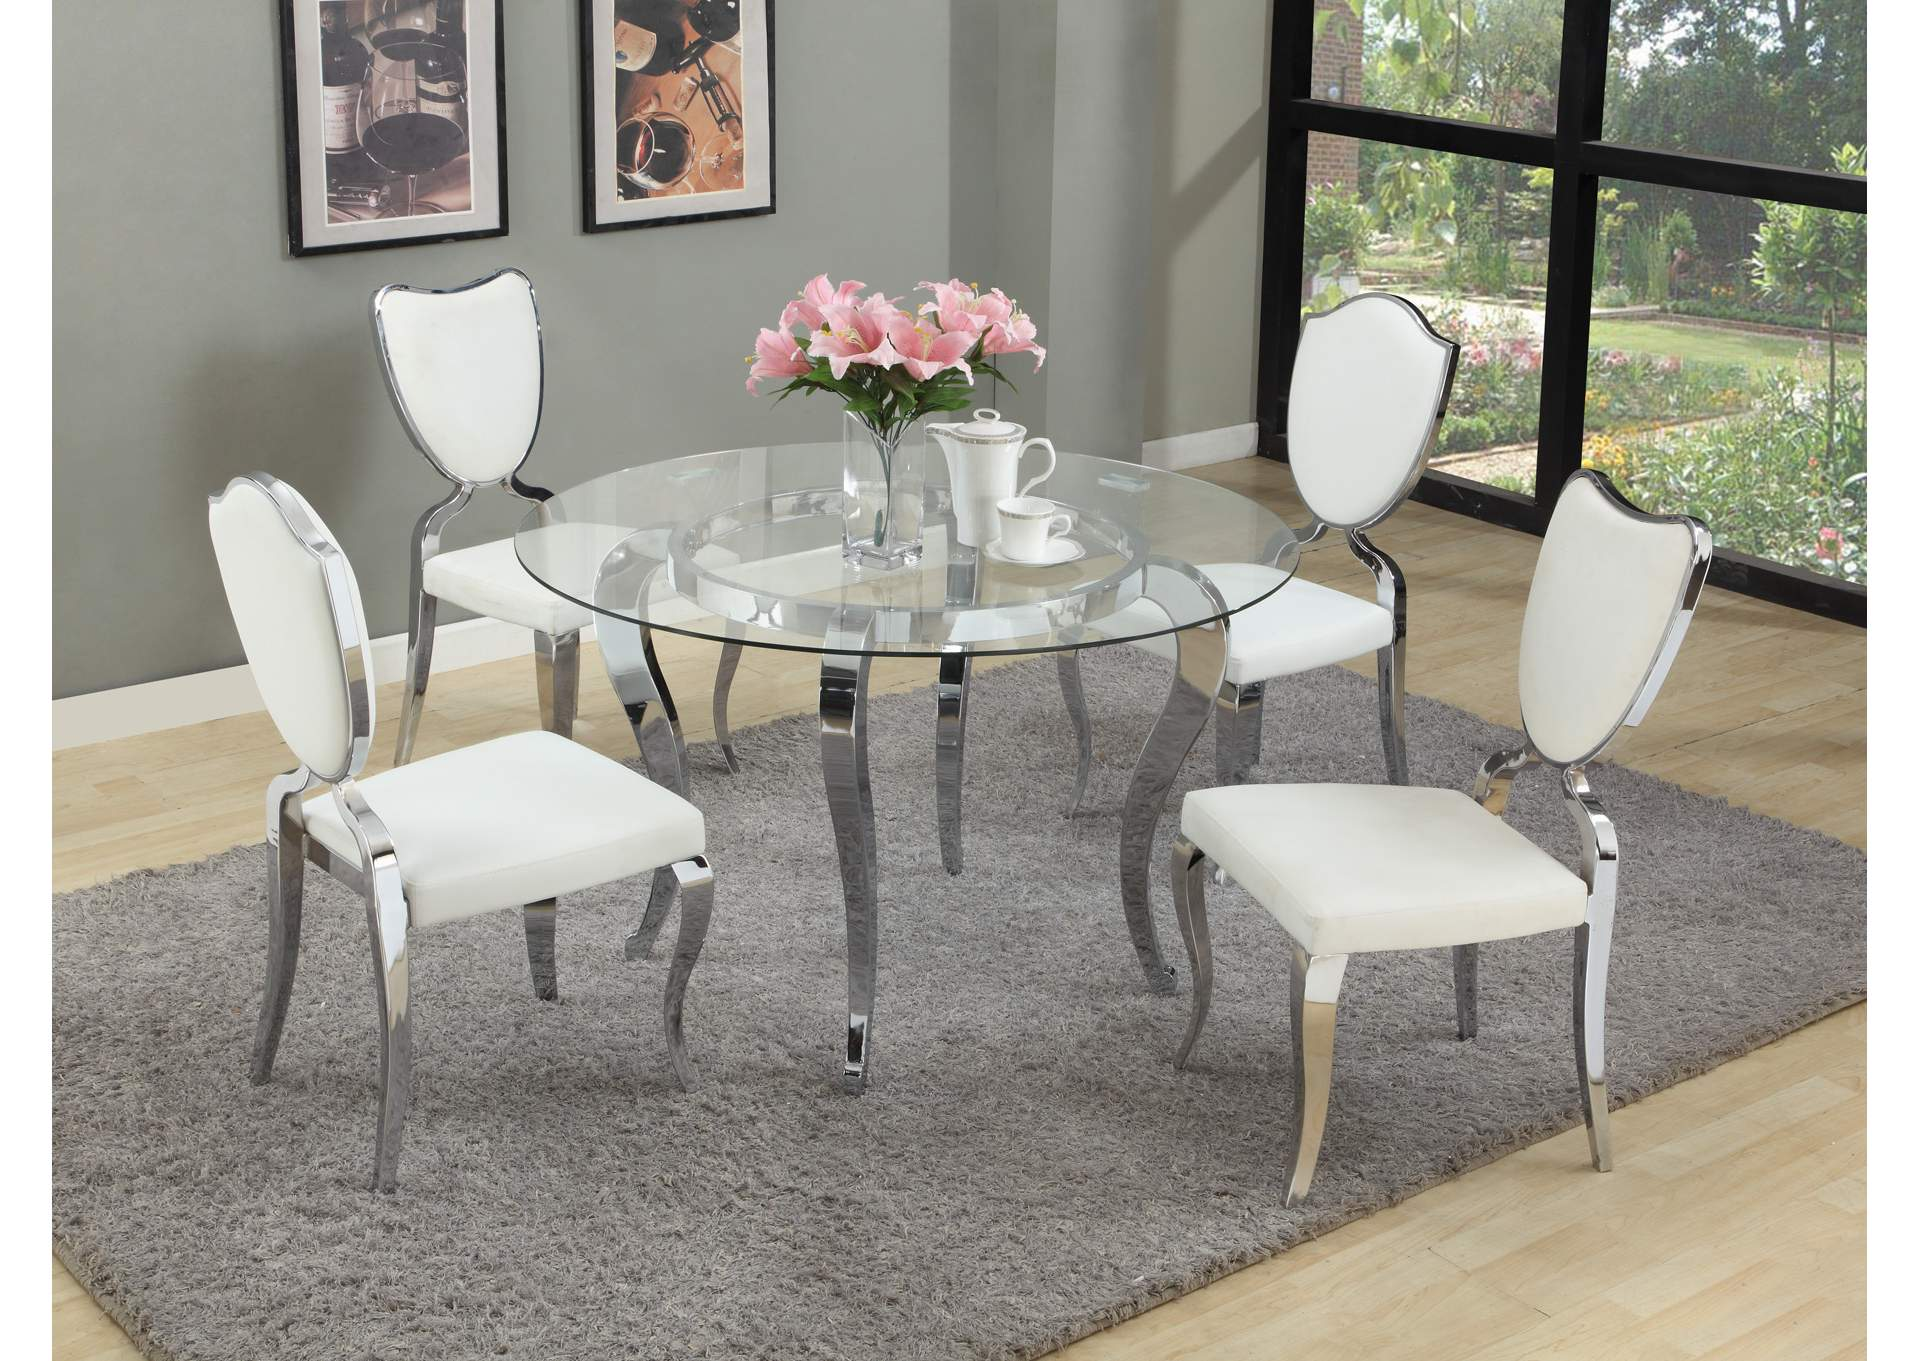 Letty White Round Glass Top 5 Piece Dining Room Set All Brands Furniture Edison Greenbrook North Brunswick Perth Amboy Linden Nj